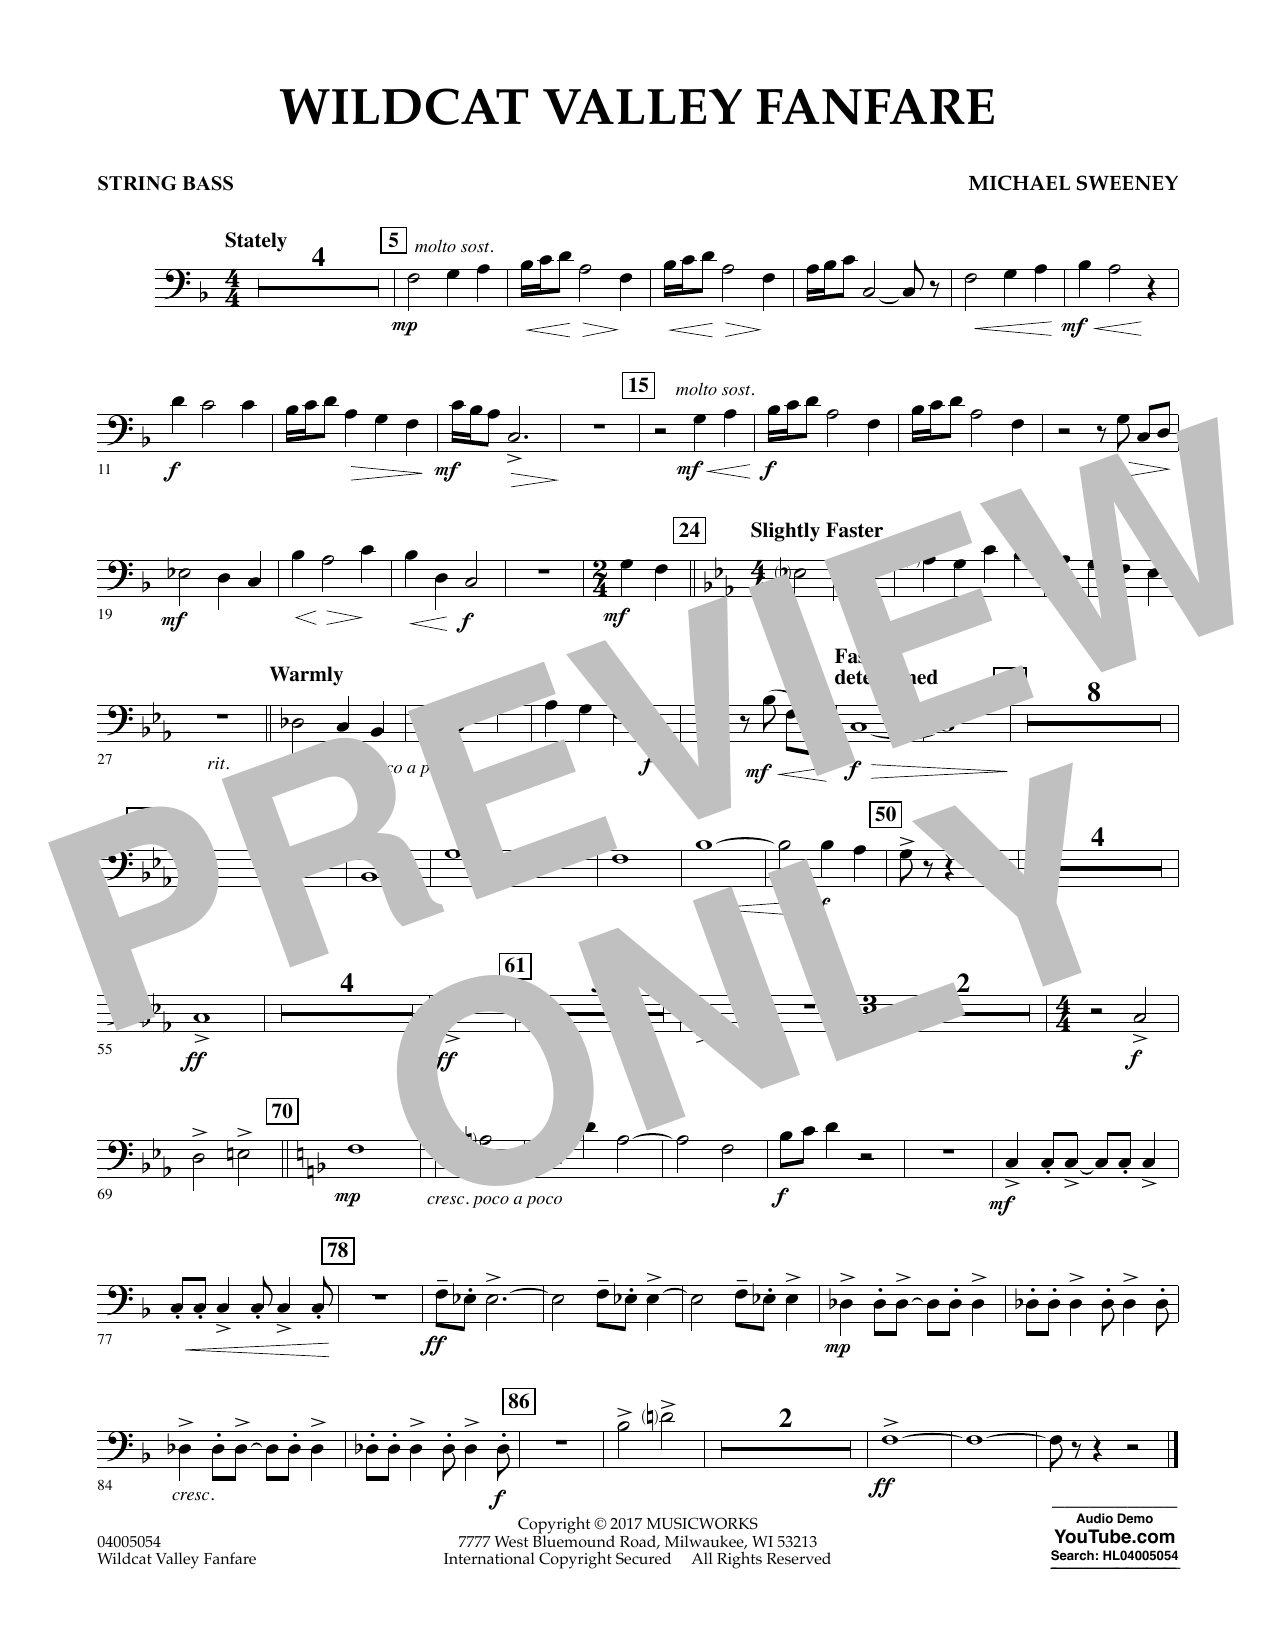 Michael Sweeney Wildcat Valley Fanfare - String Bass sheet music notes and chords. Download Printable PDF.